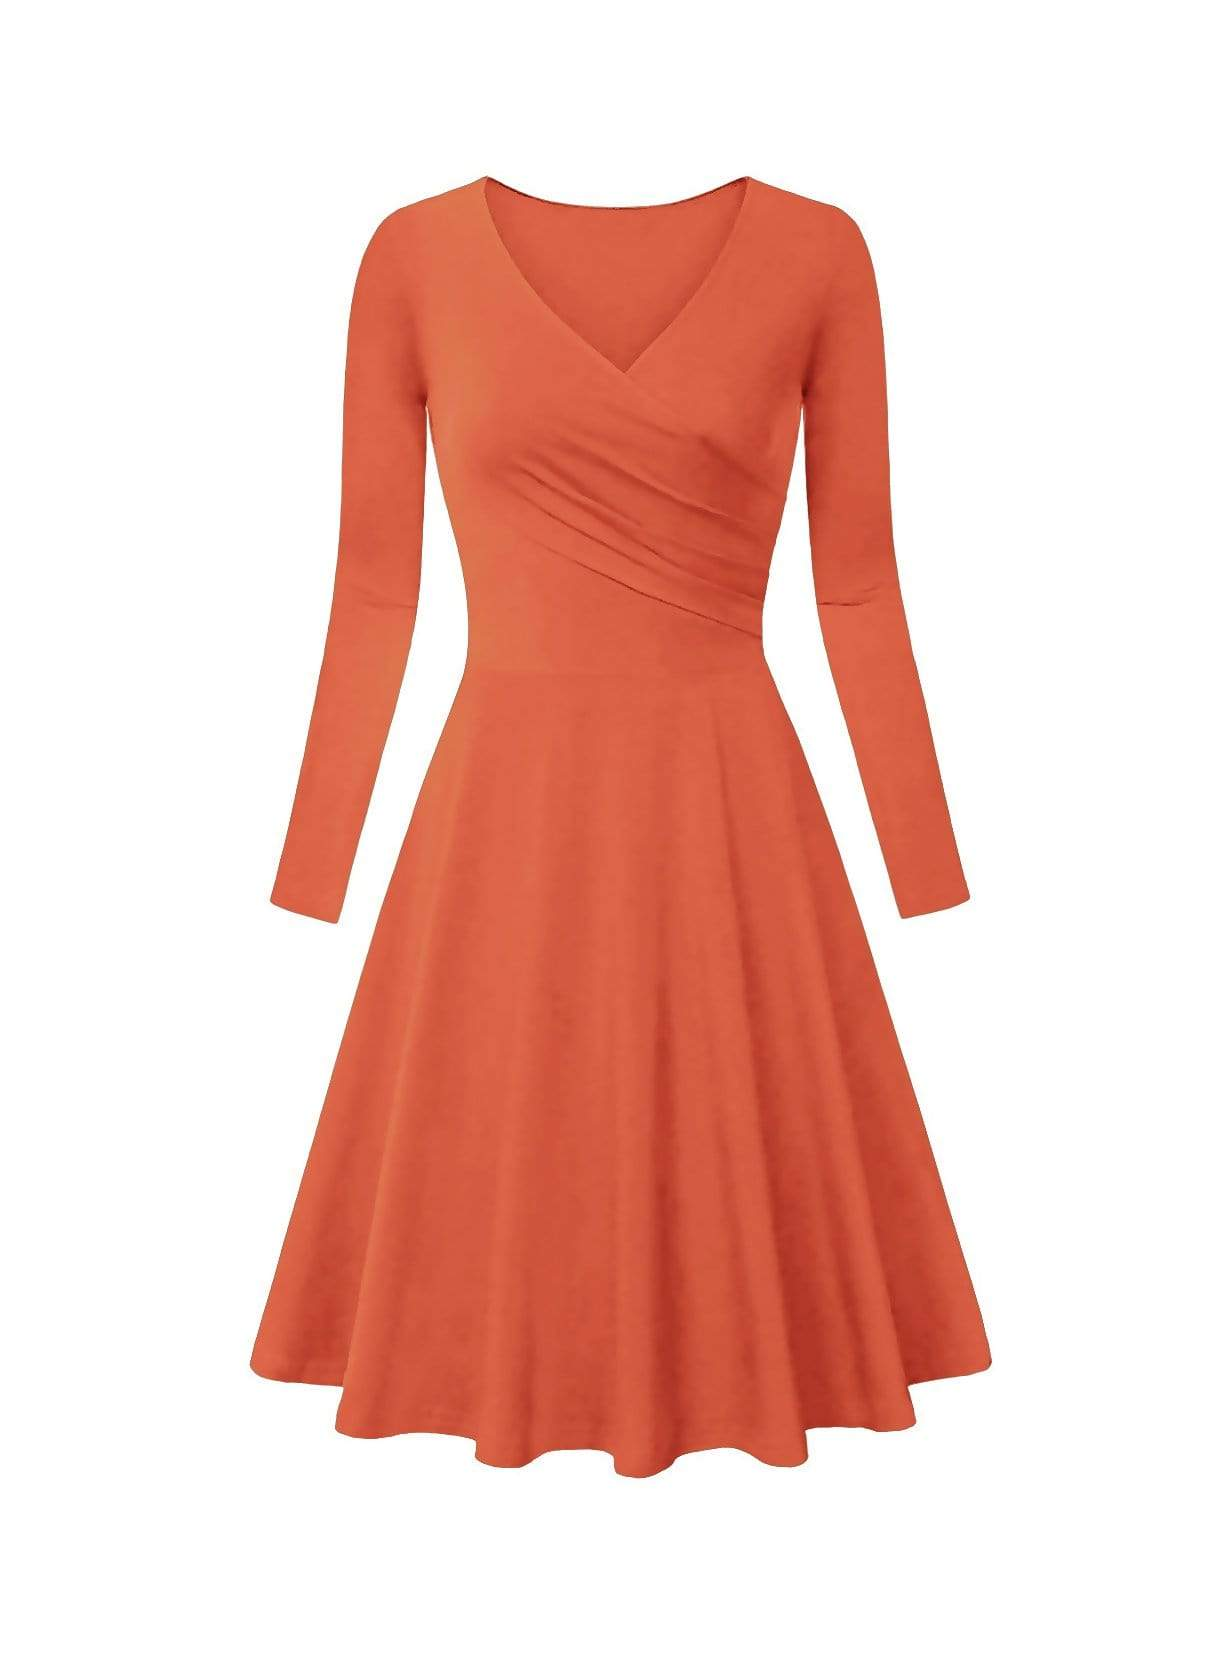 DAILYHAUTE Women's dress RUST / S Haute Edition Women's V-Neck Long Sleeve Skater Dress